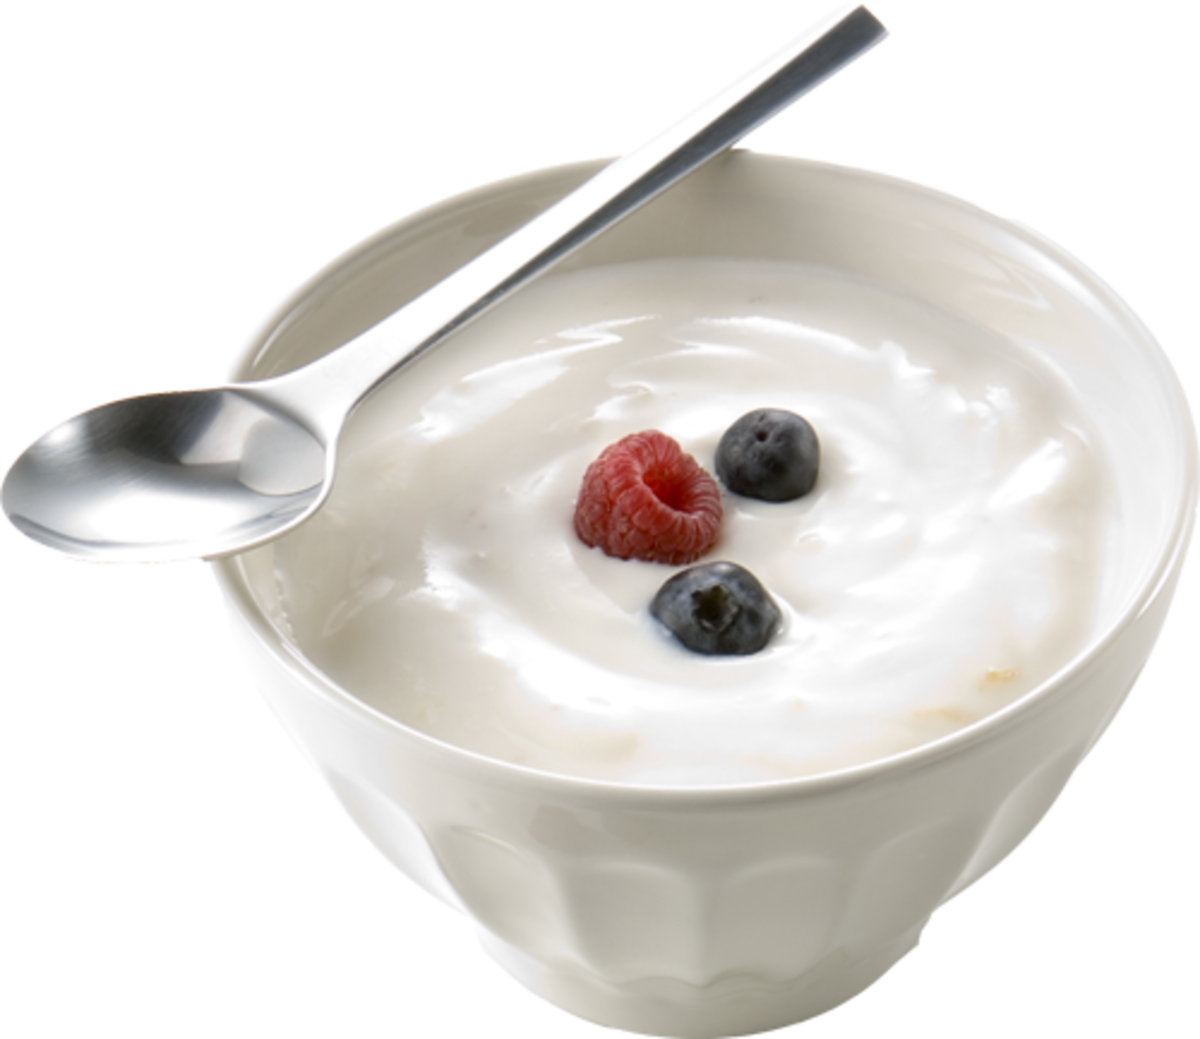 Yoghurt is a natural treatment for male yeast infections